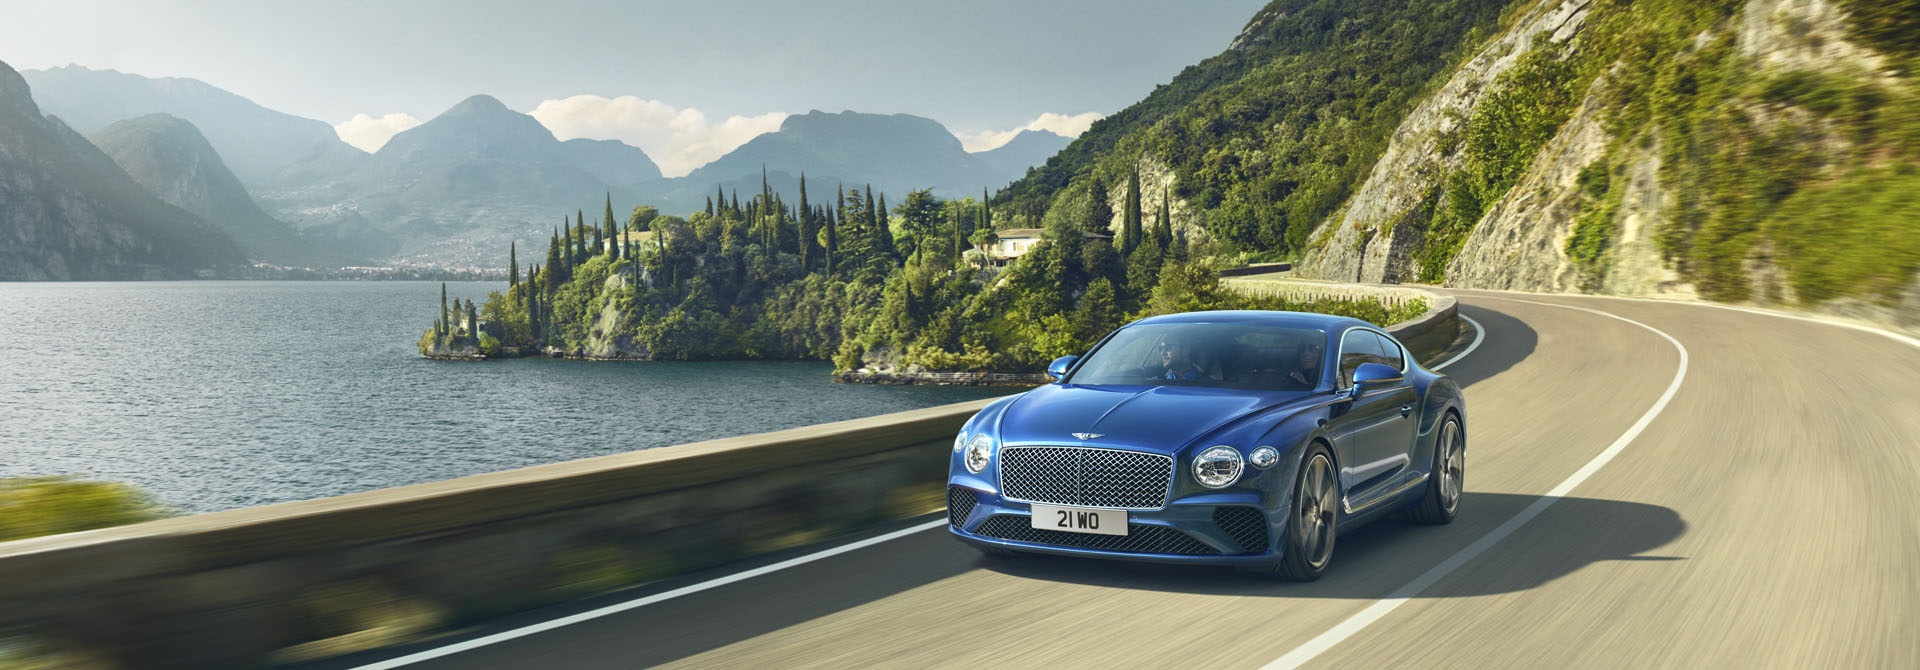 Where are bentley cars made